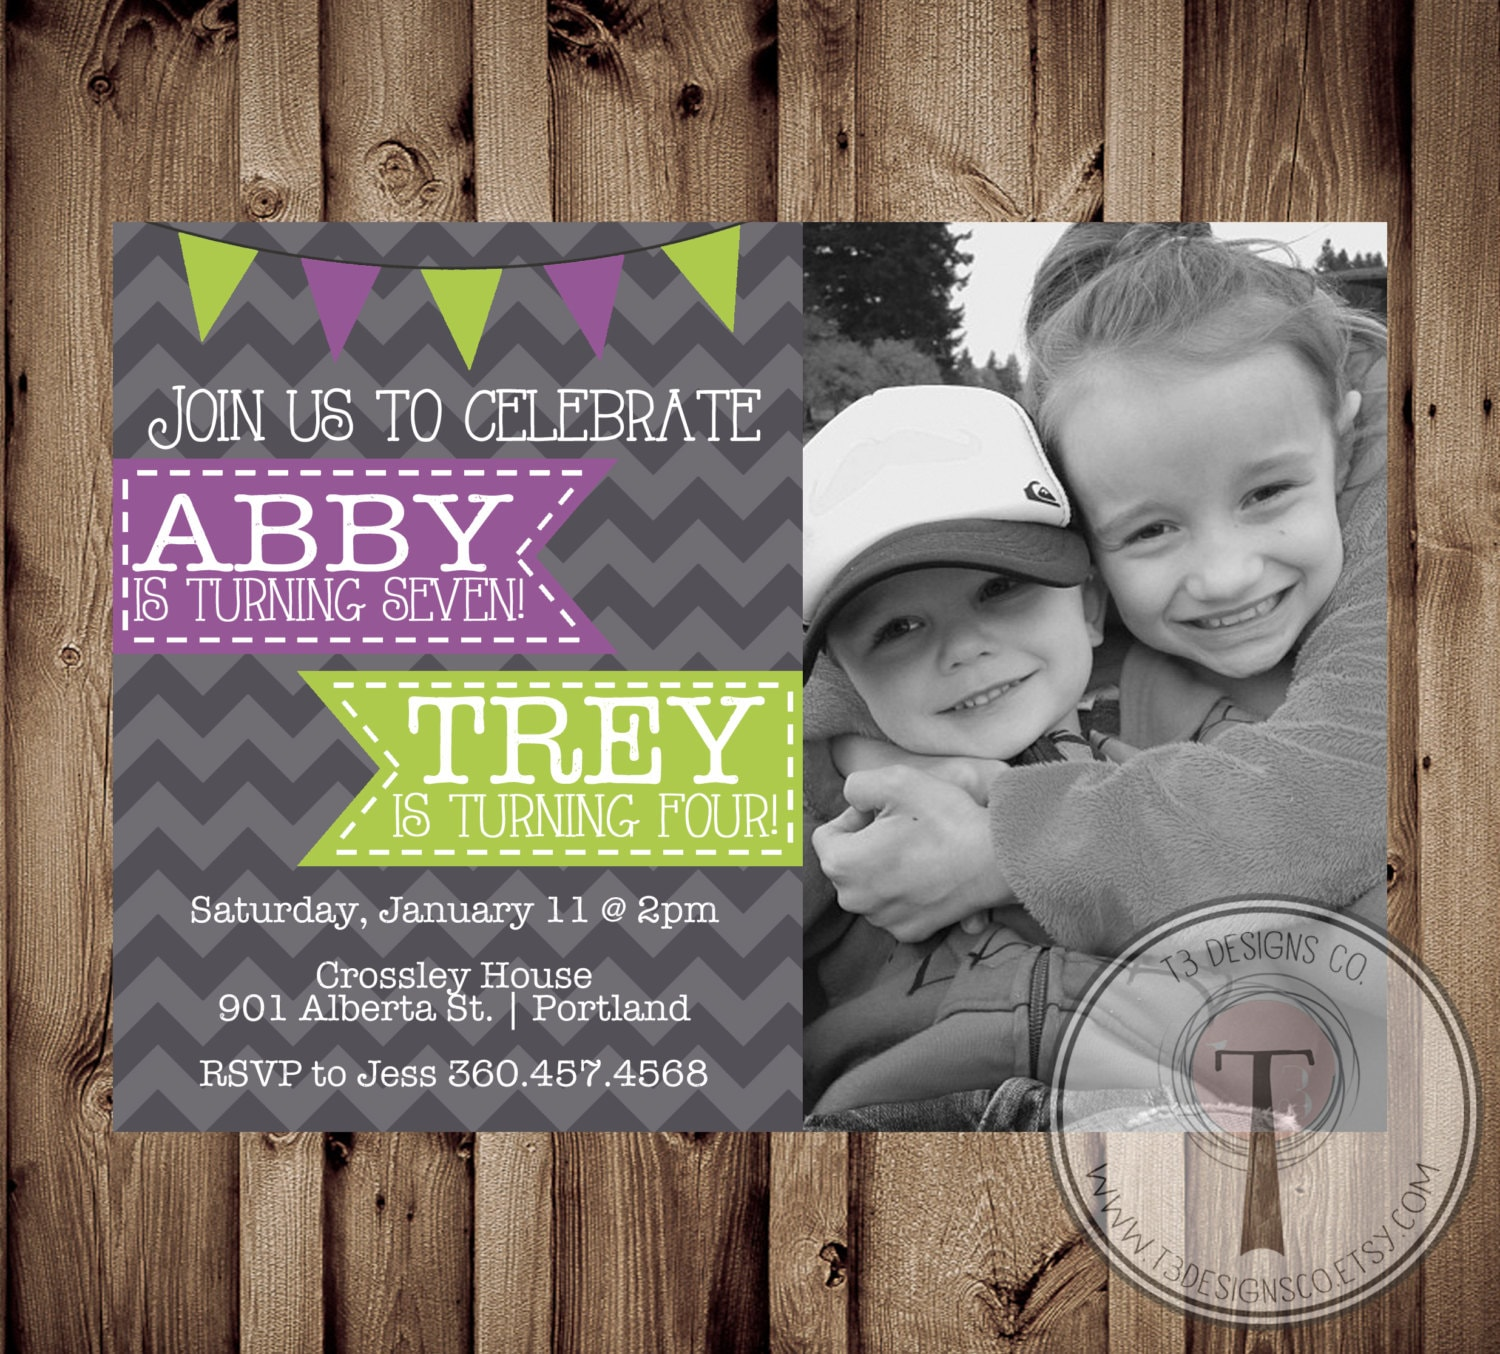 Joint birthday party invitation boy and girl photo birthday invite joint birthday party invitation boy and girl photo birthday invite photo birthday invitation double birthday brother sister joint party filmwisefo